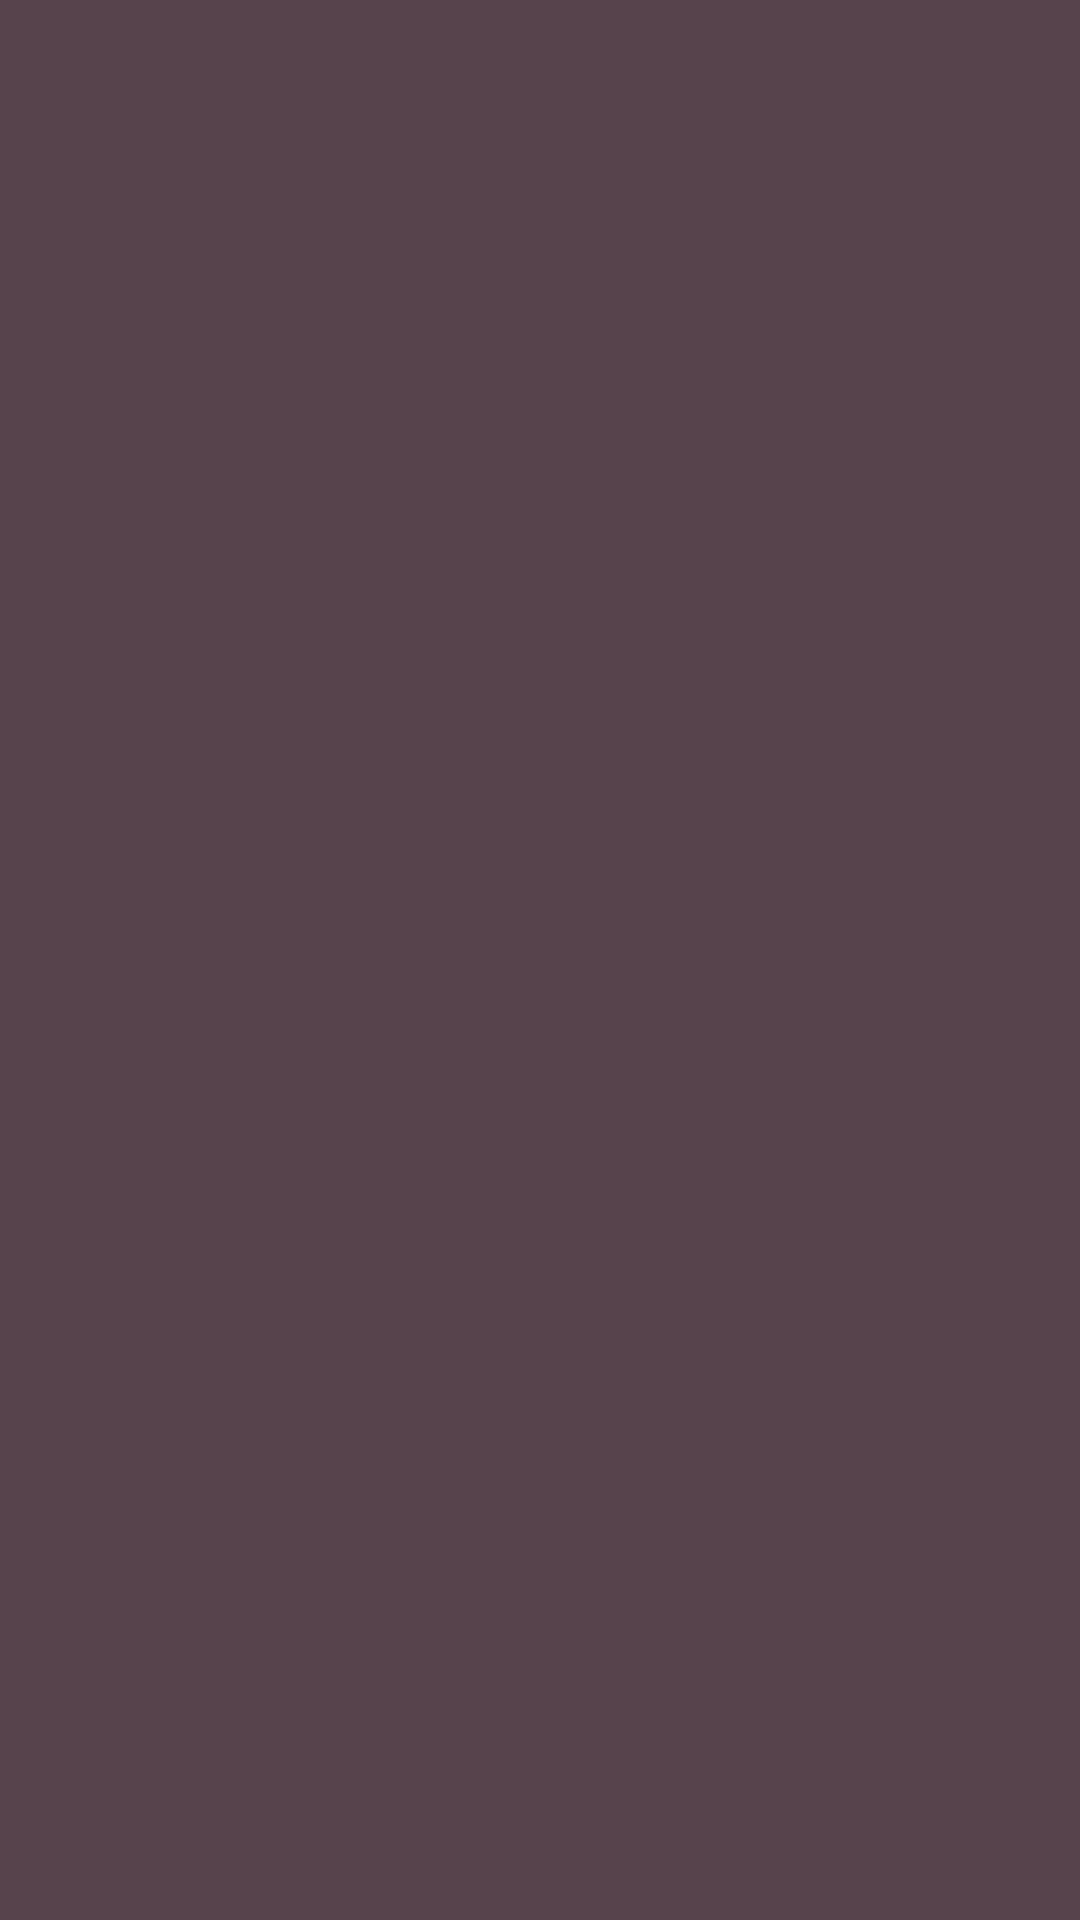 57434b Solid Color Image Solidcolore